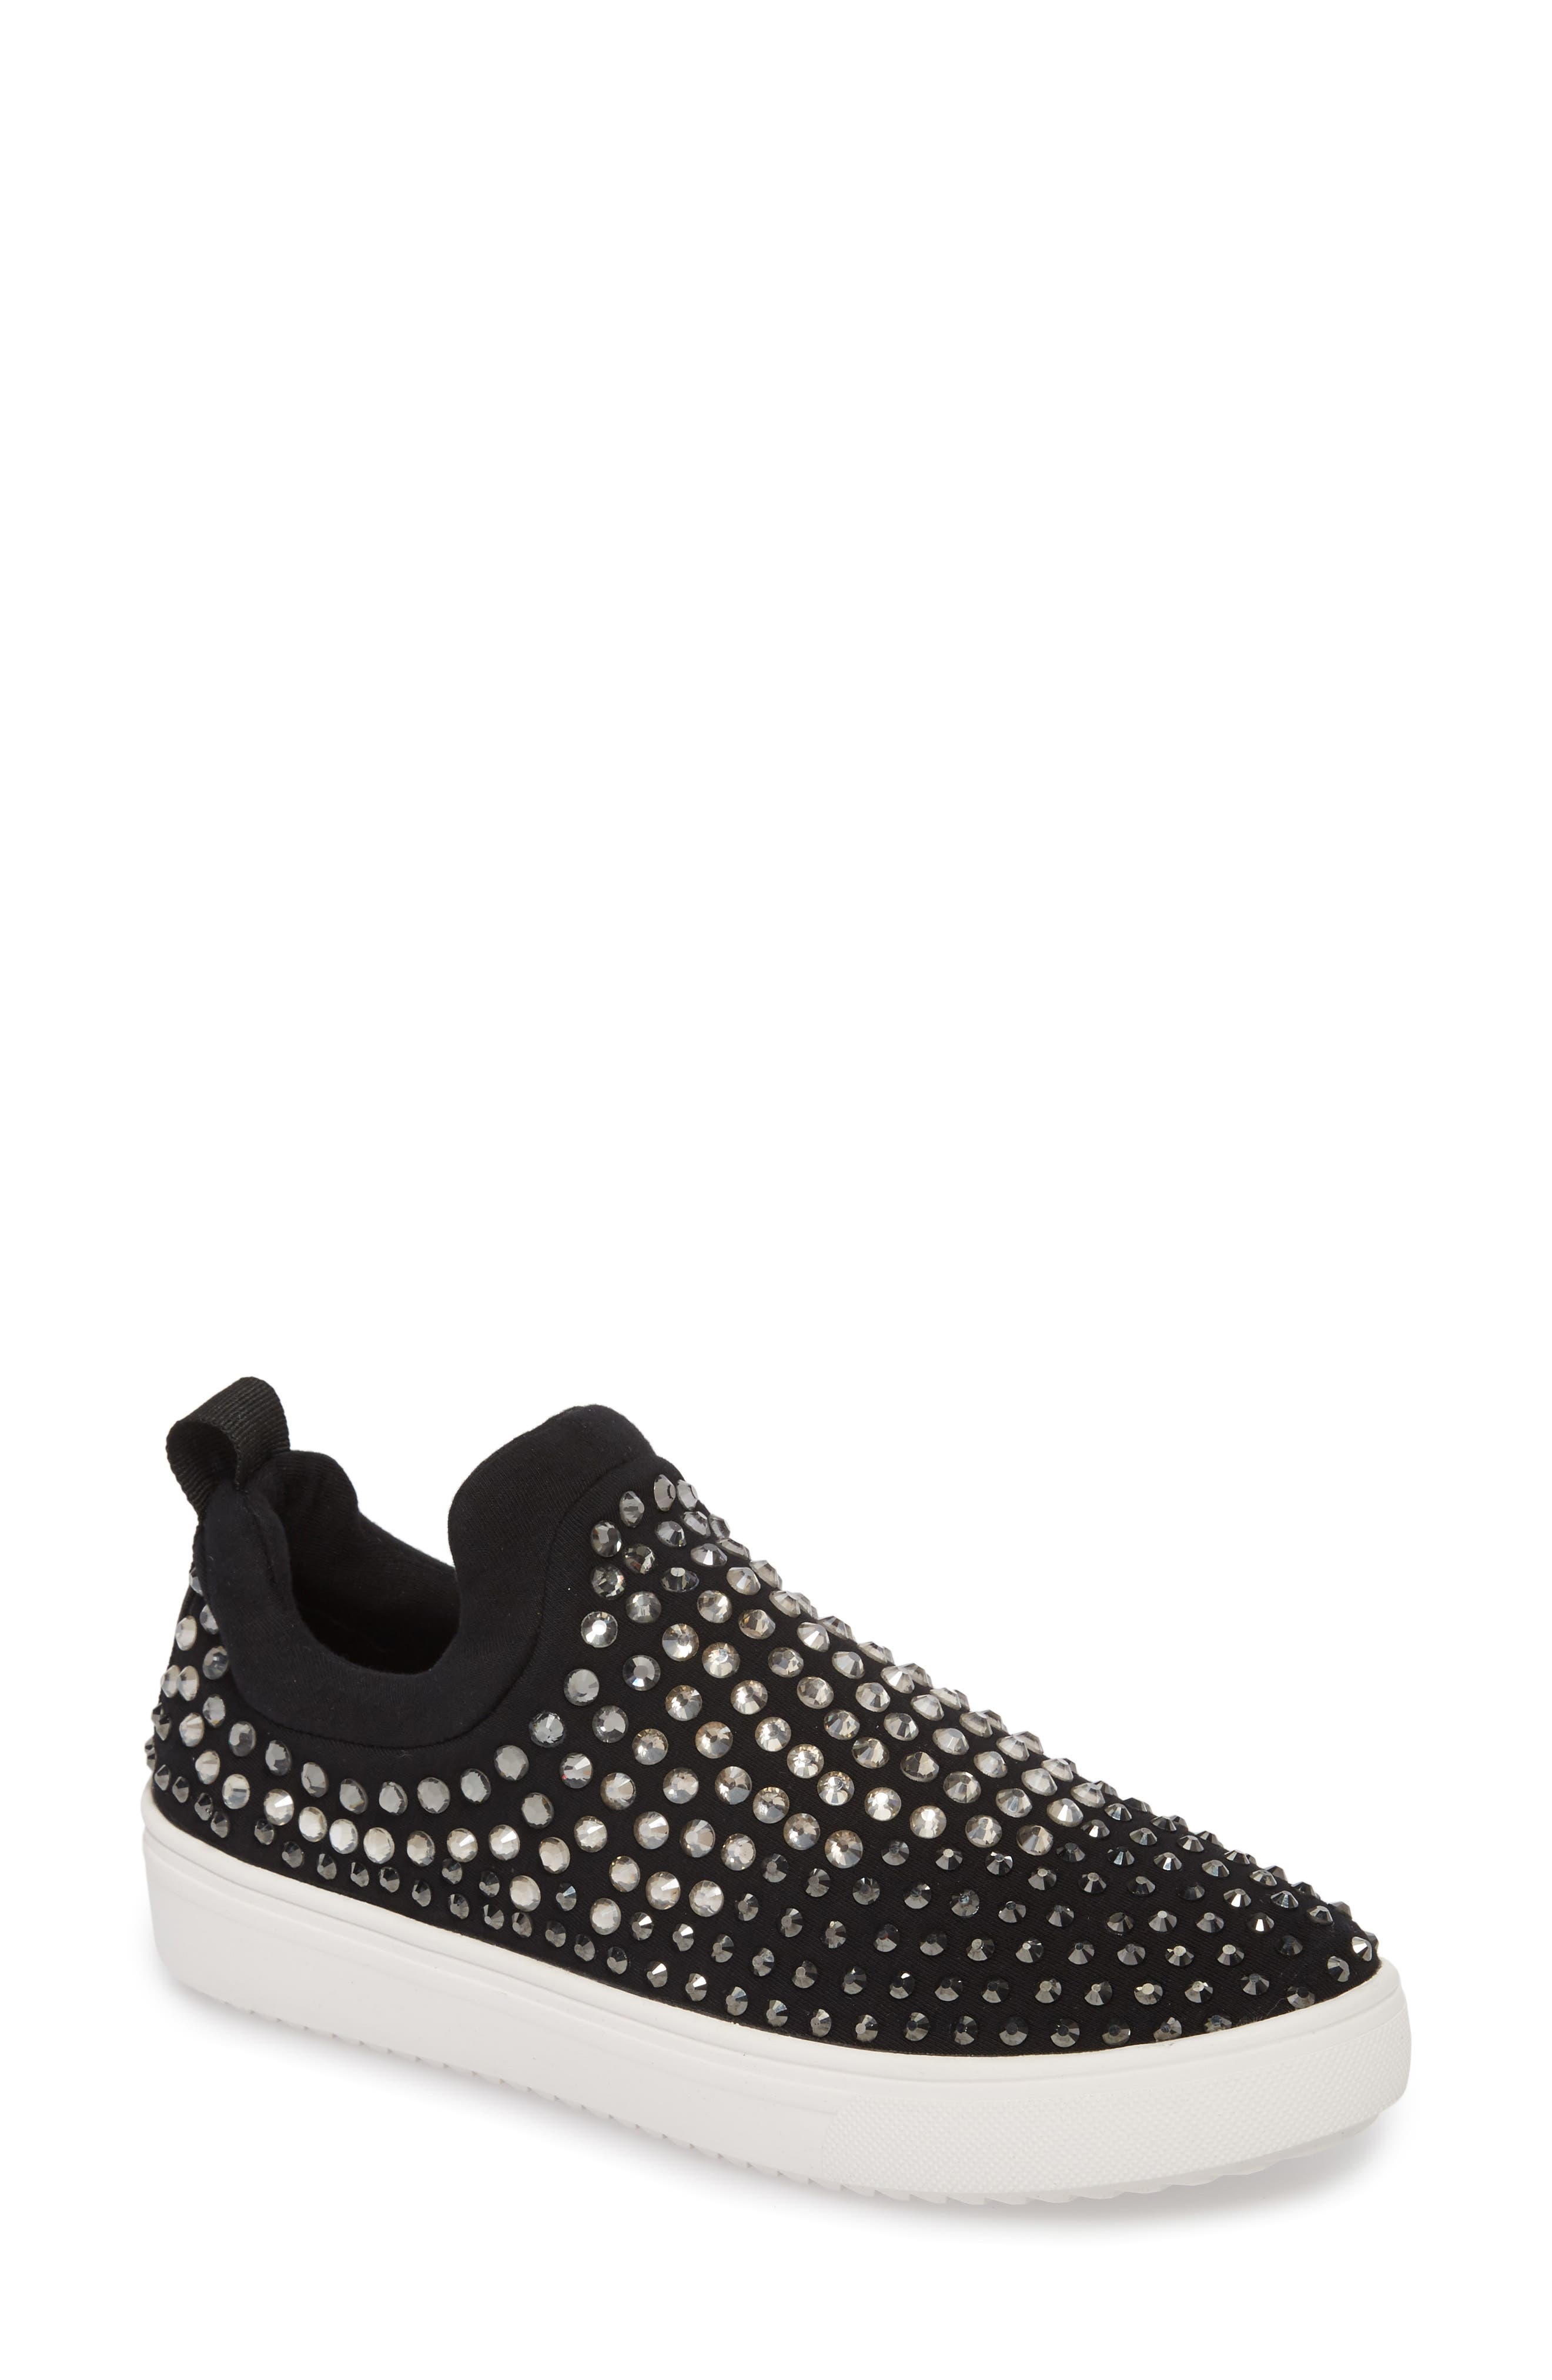 Sherry Crystal Embellished Sneaker,                             Main thumbnail 1, color,                             Black Multi Fabric